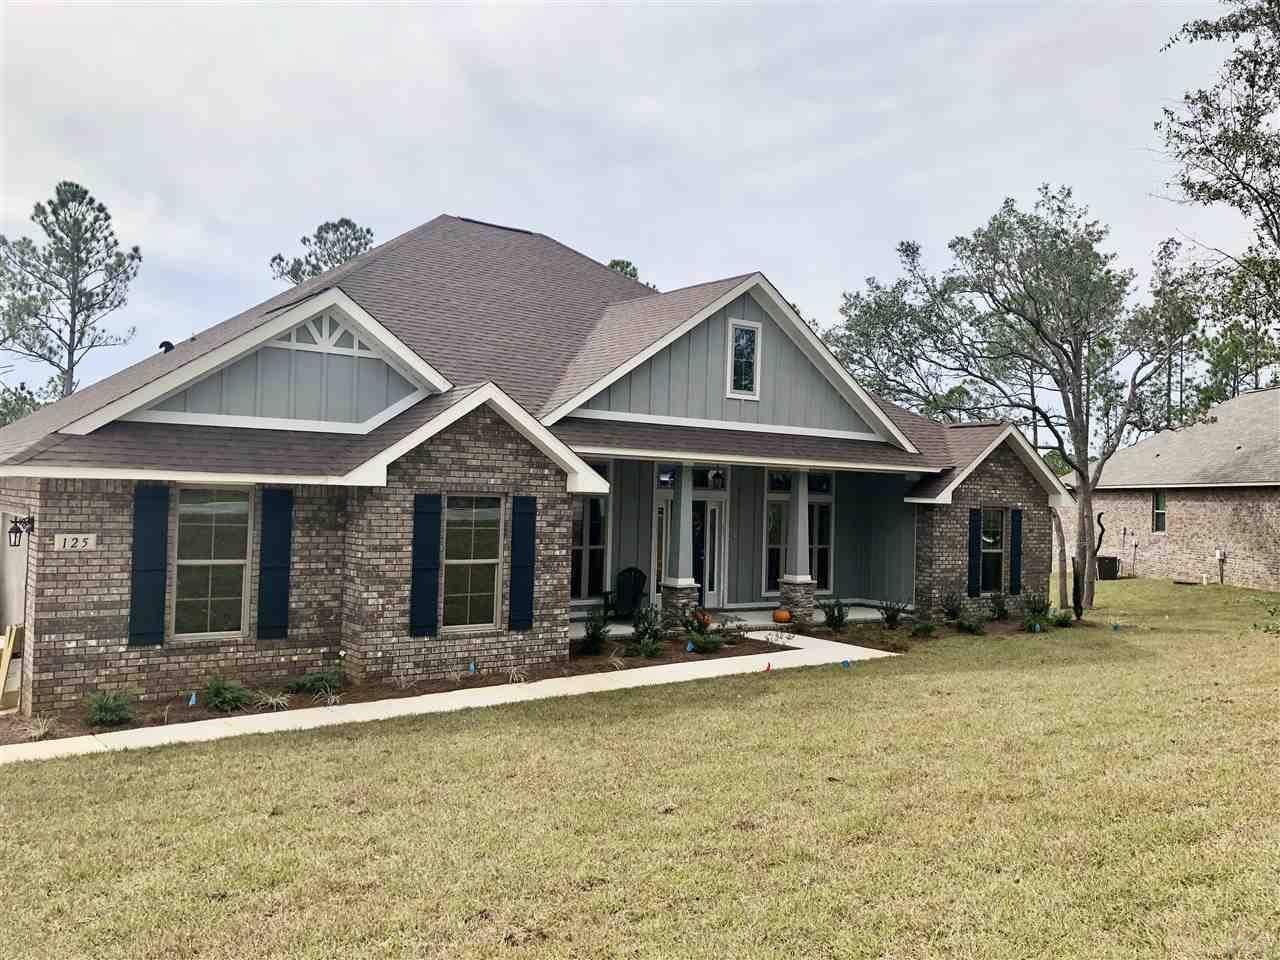 Photo for 125 LEONINE HOLLOW, CRESTVIEW, FL 32536 (MLS # 546995)